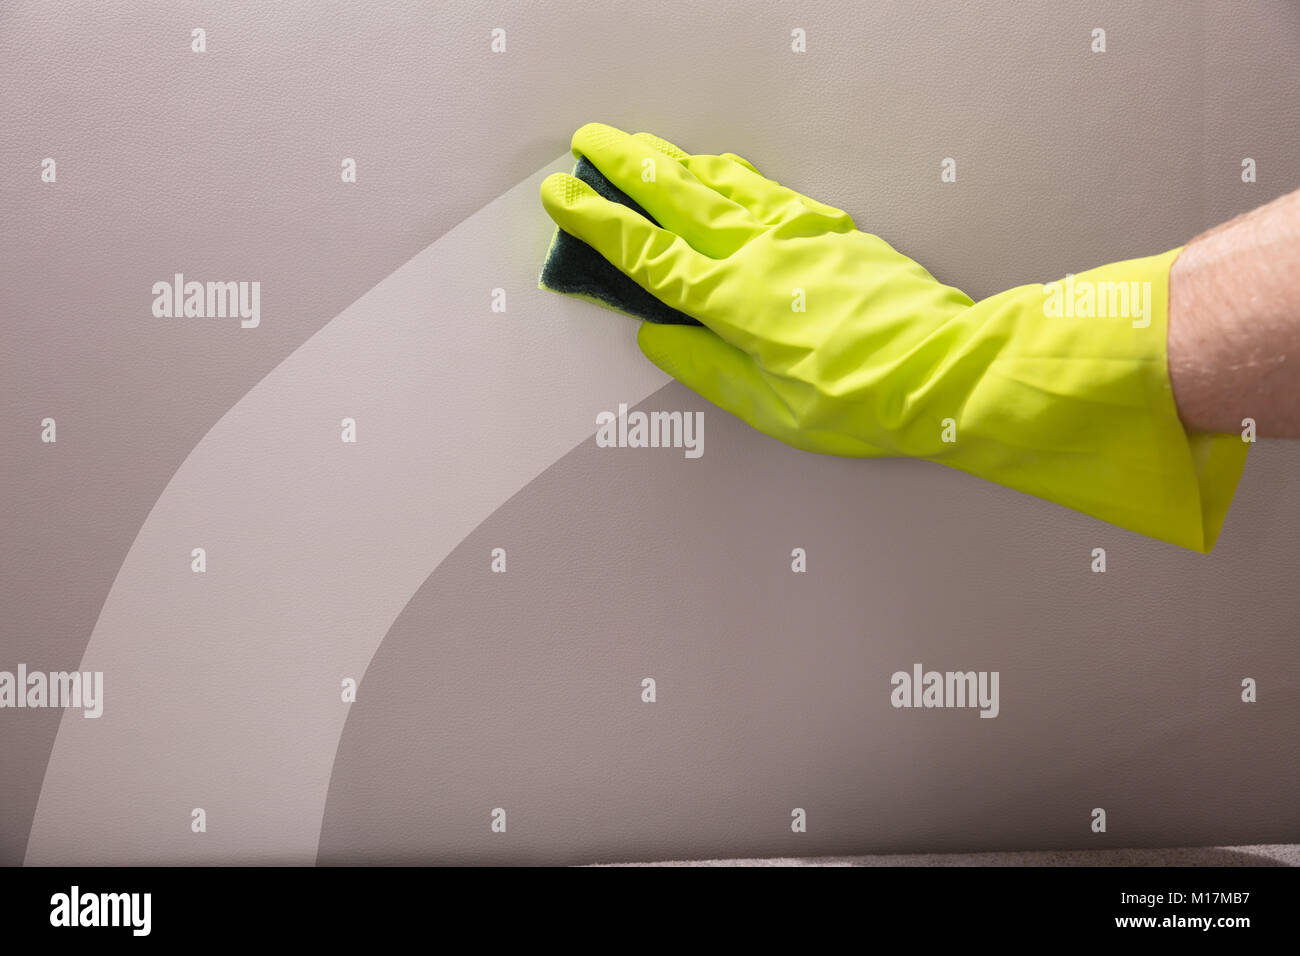 Close Up Of A Personu0027s Hand Wearing Gloves Cleaning Sofa With Sponge